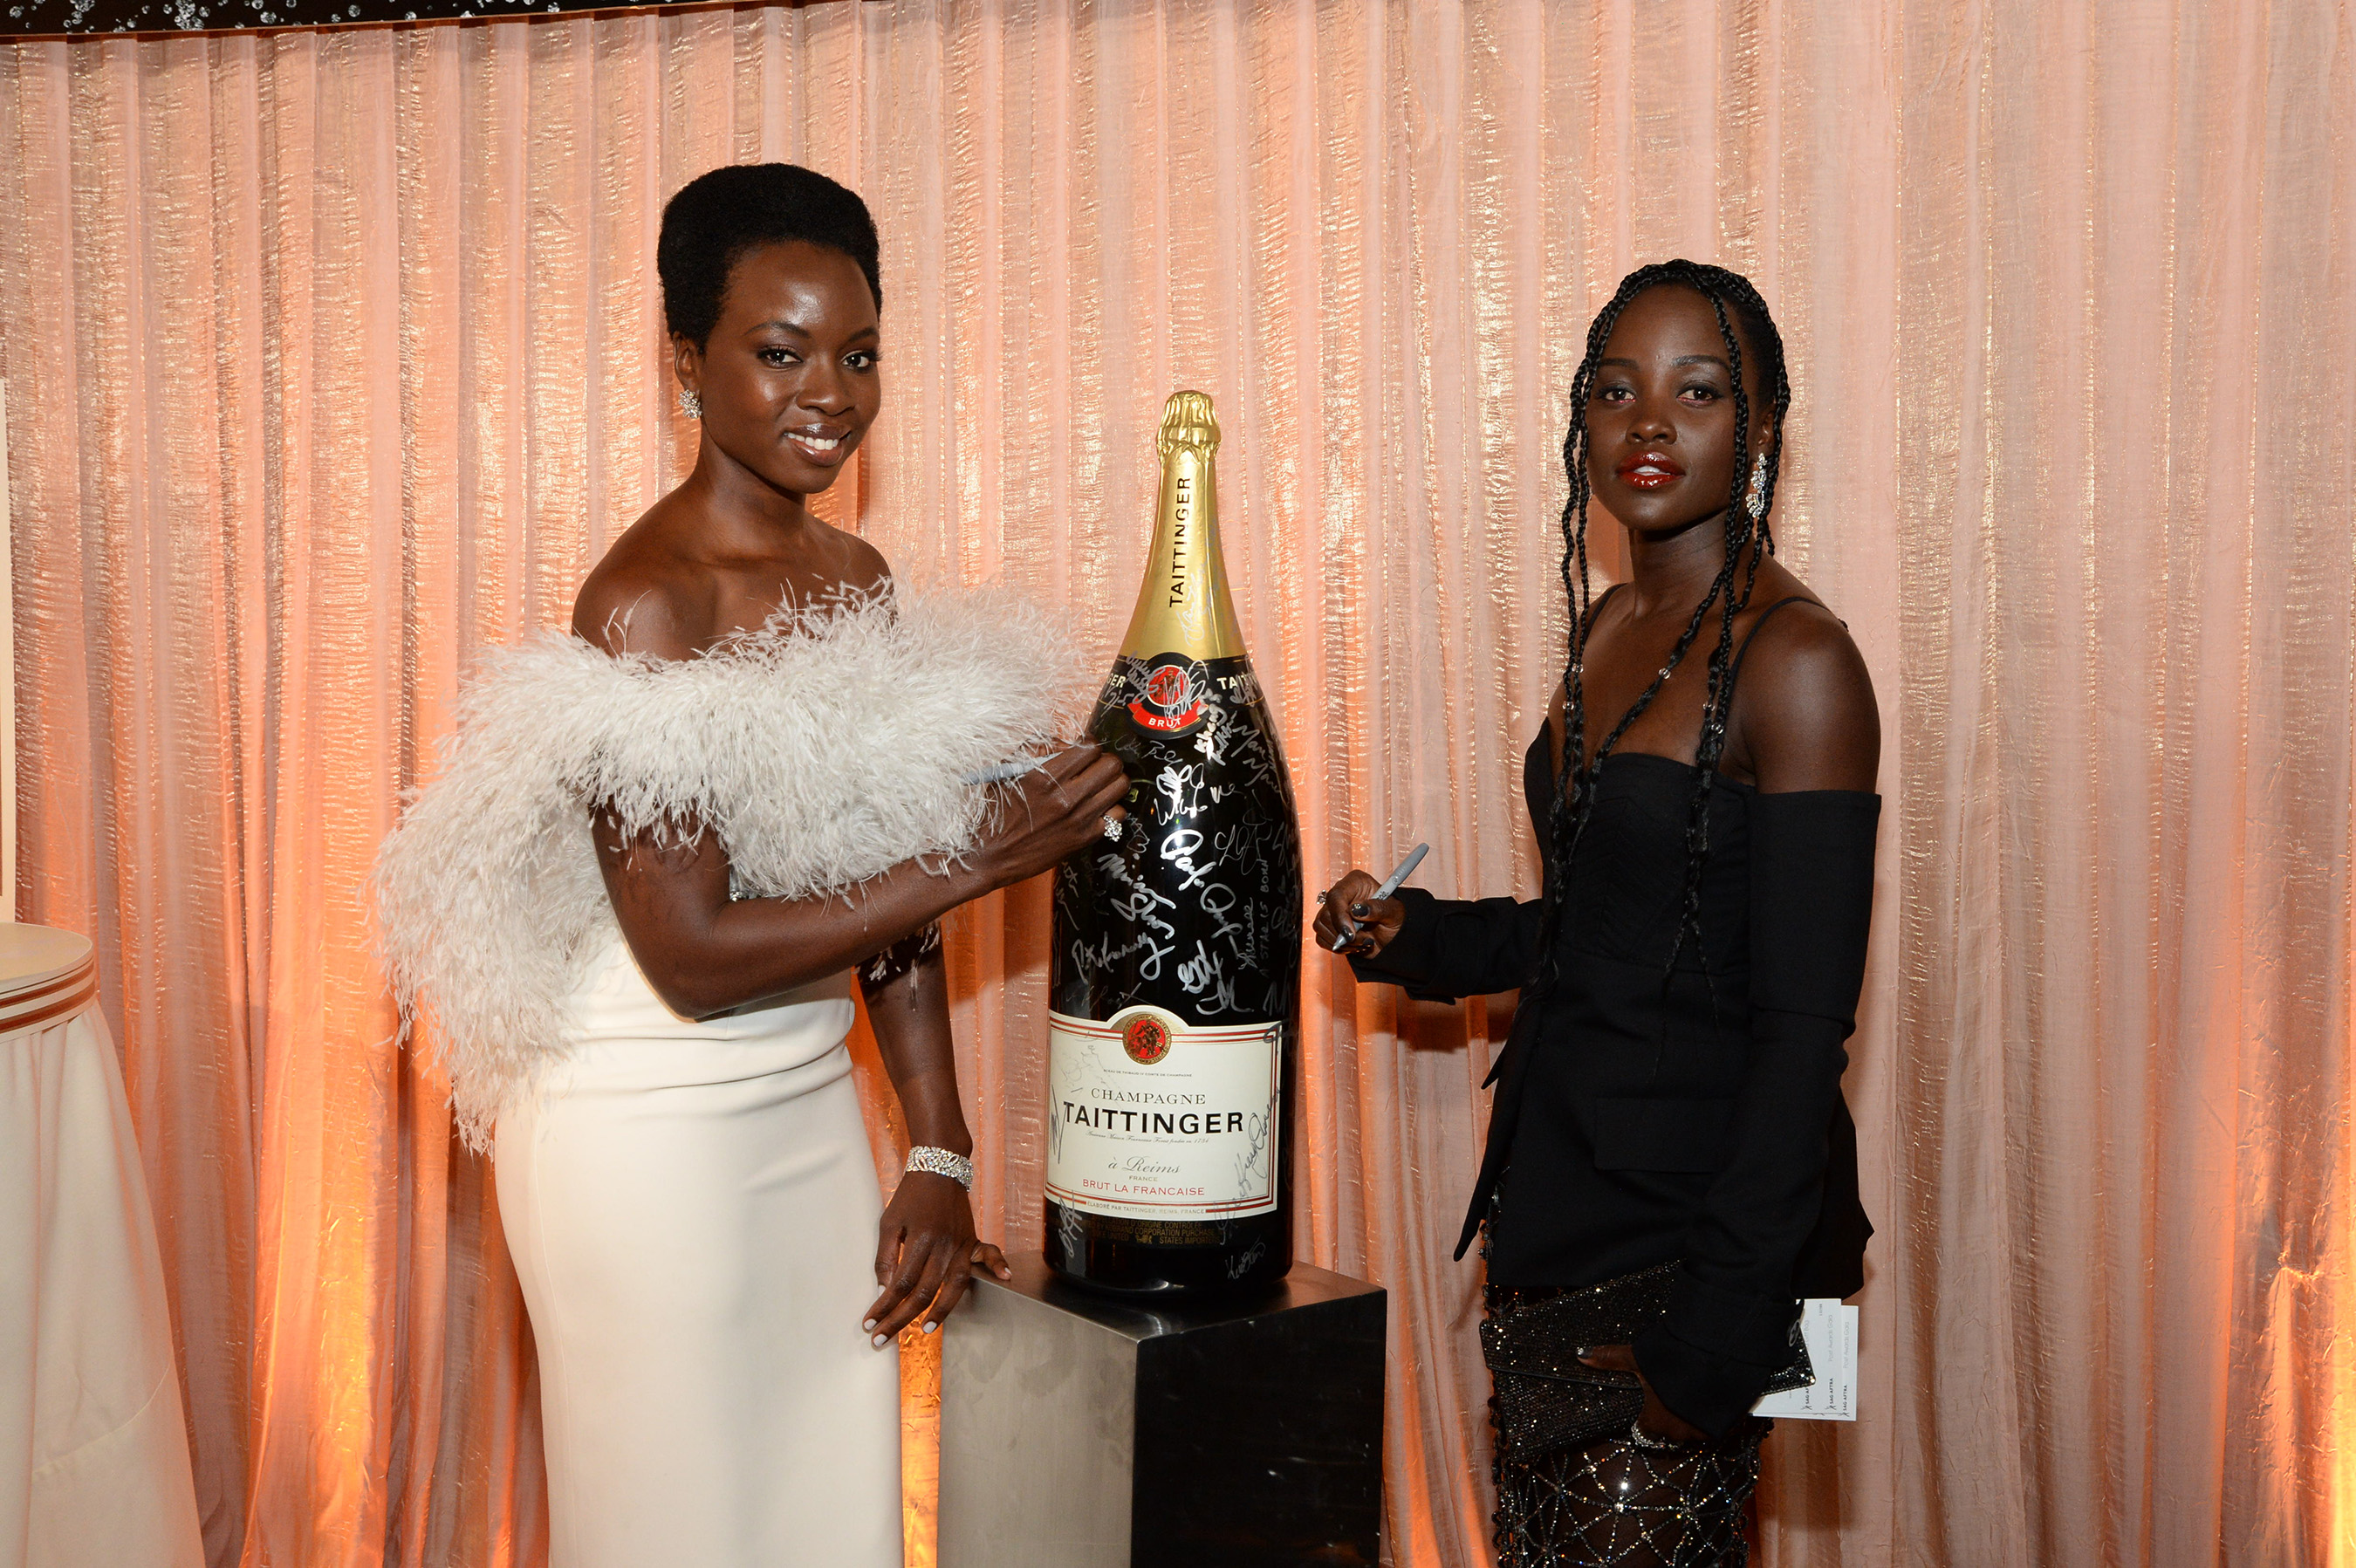 Danai Gurira and Lupita Nyong'o add their signatures to Champagne Taittinger's bottle activation at the 25th Annual Screen Actors Guild Awards on January 27, 2019.